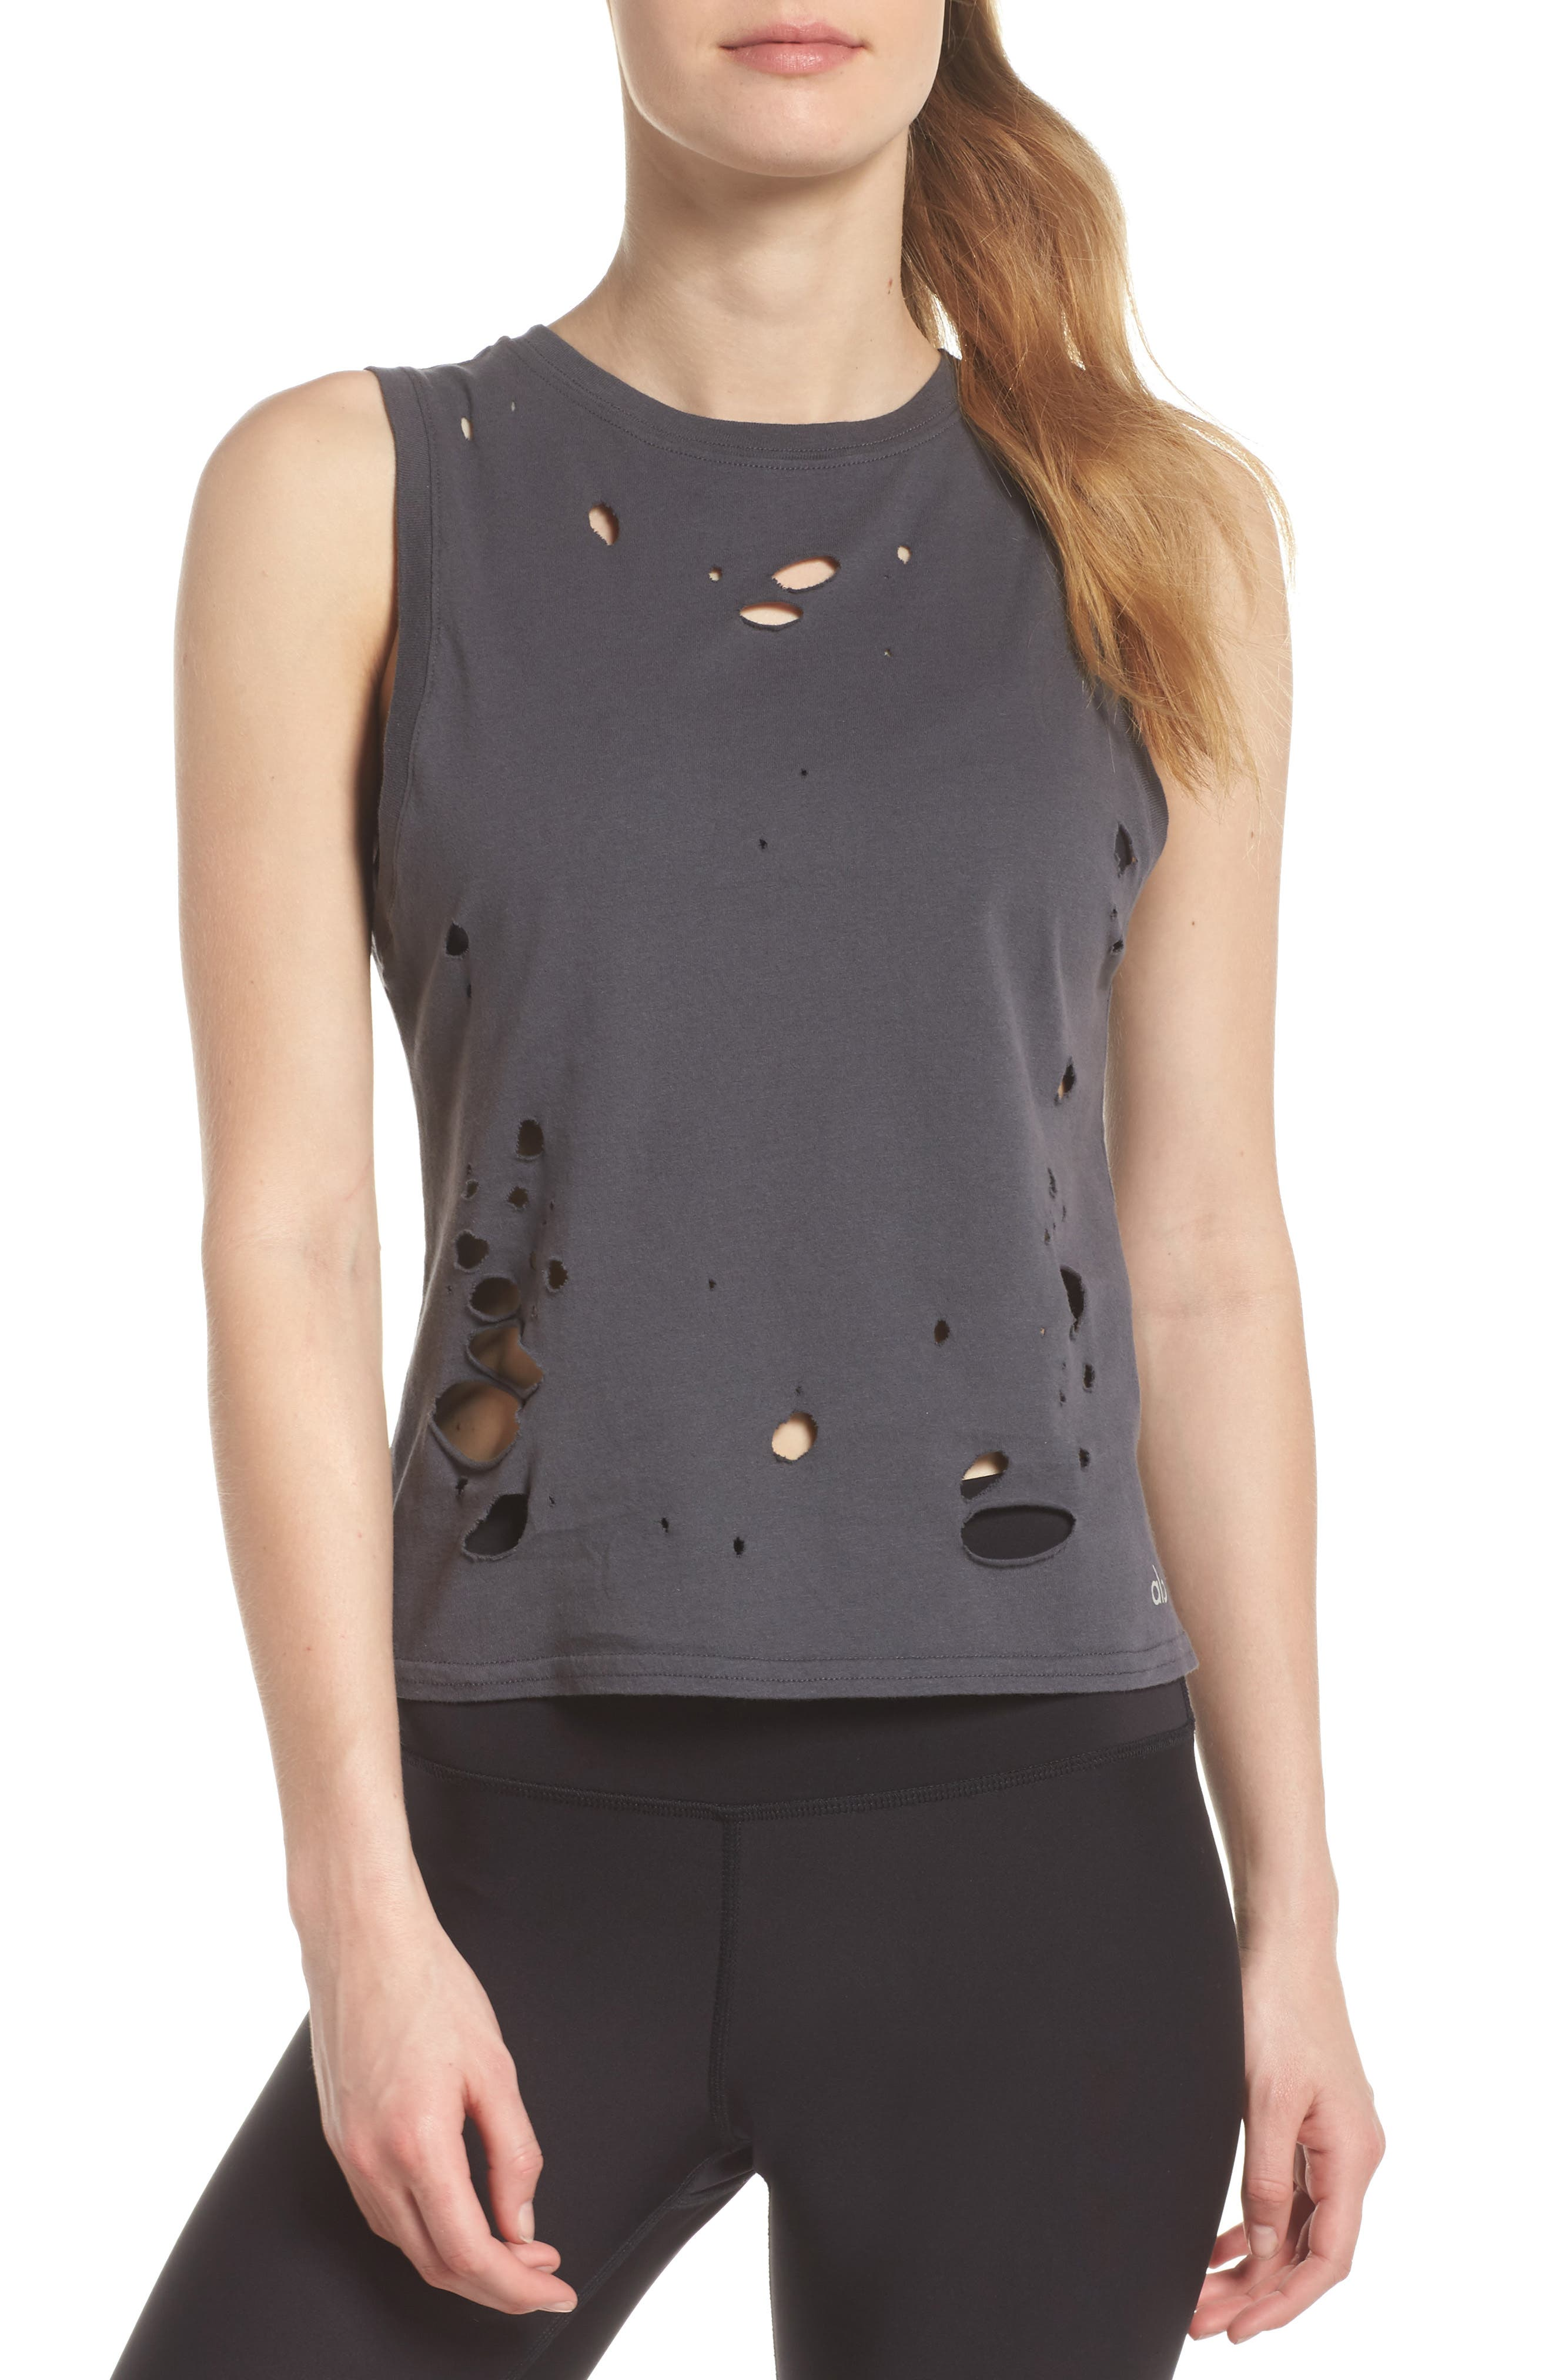 Harley Muscle Tank,                             Main thumbnail 1, color,                             Anthracite/ Distressed Holes